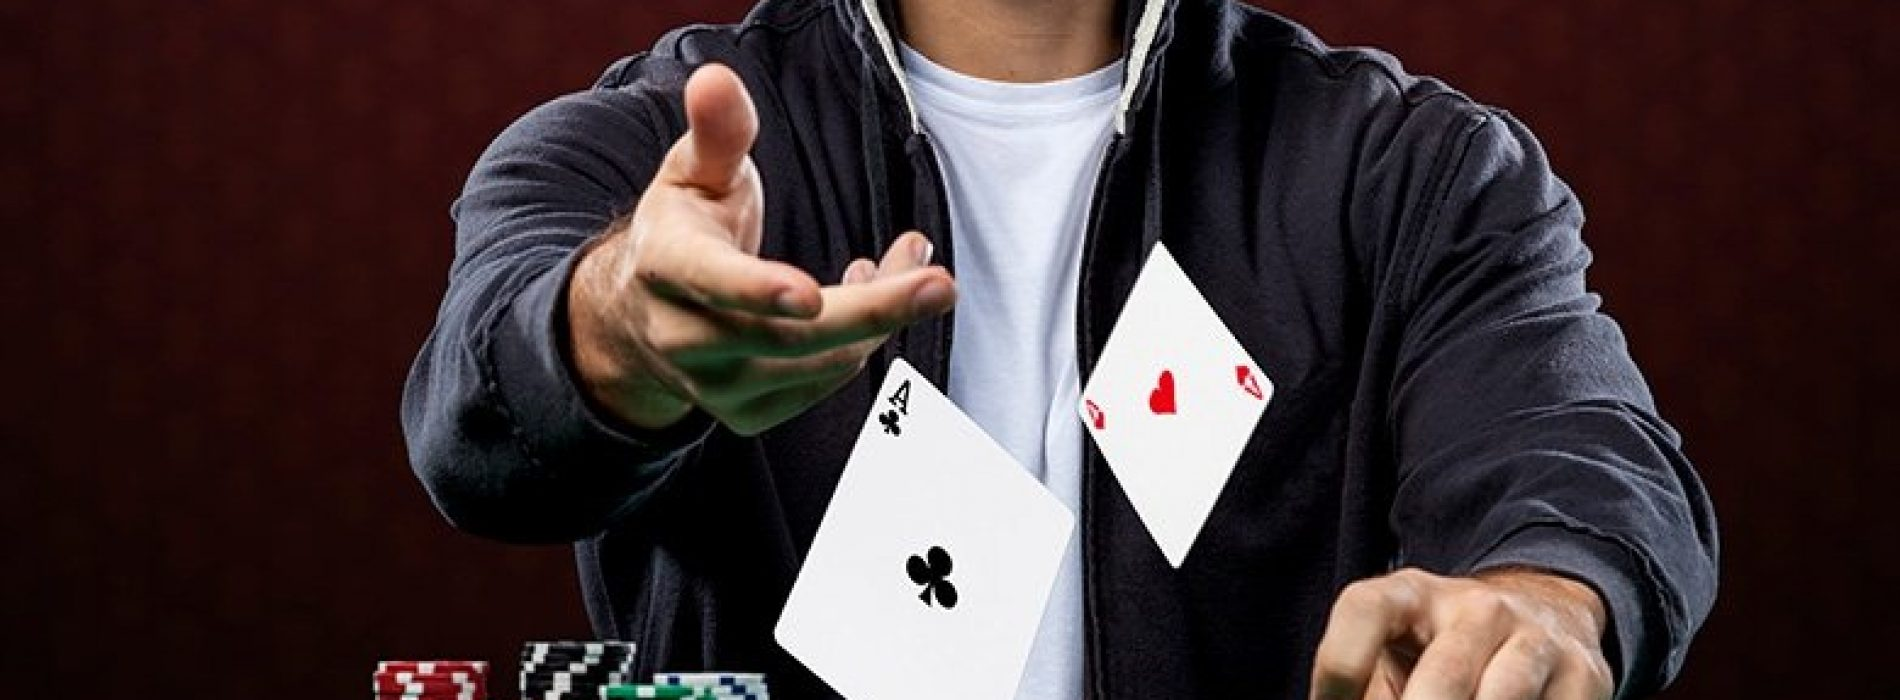 Is poker game of skill or luck?